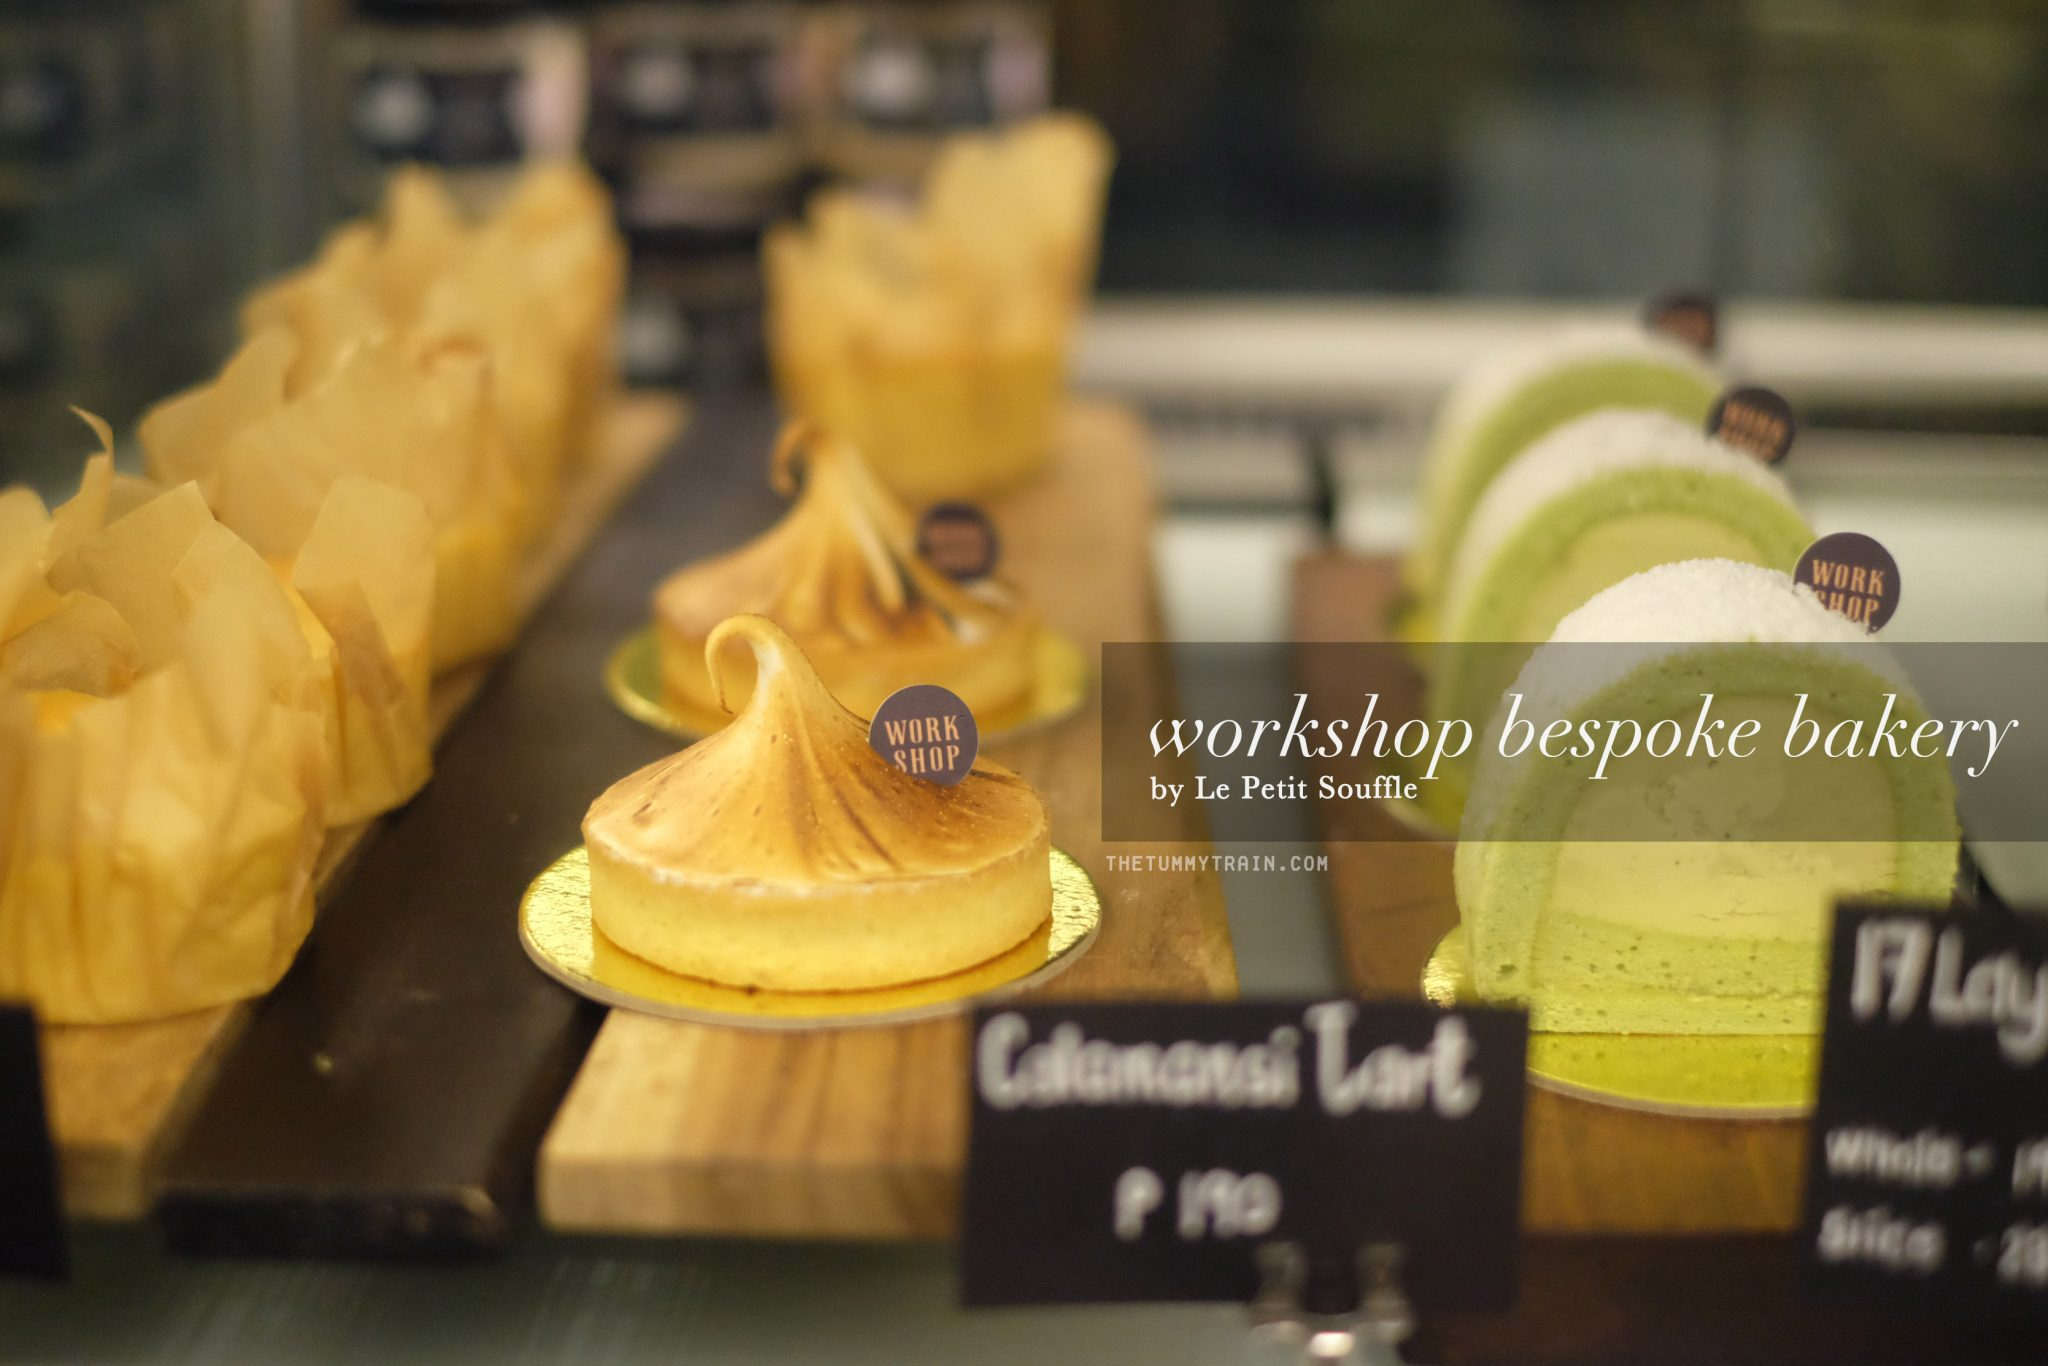 WORKSHOP COVER - Pastry Galore at Workshop Bespoke Bakery by Le Petit Souffle